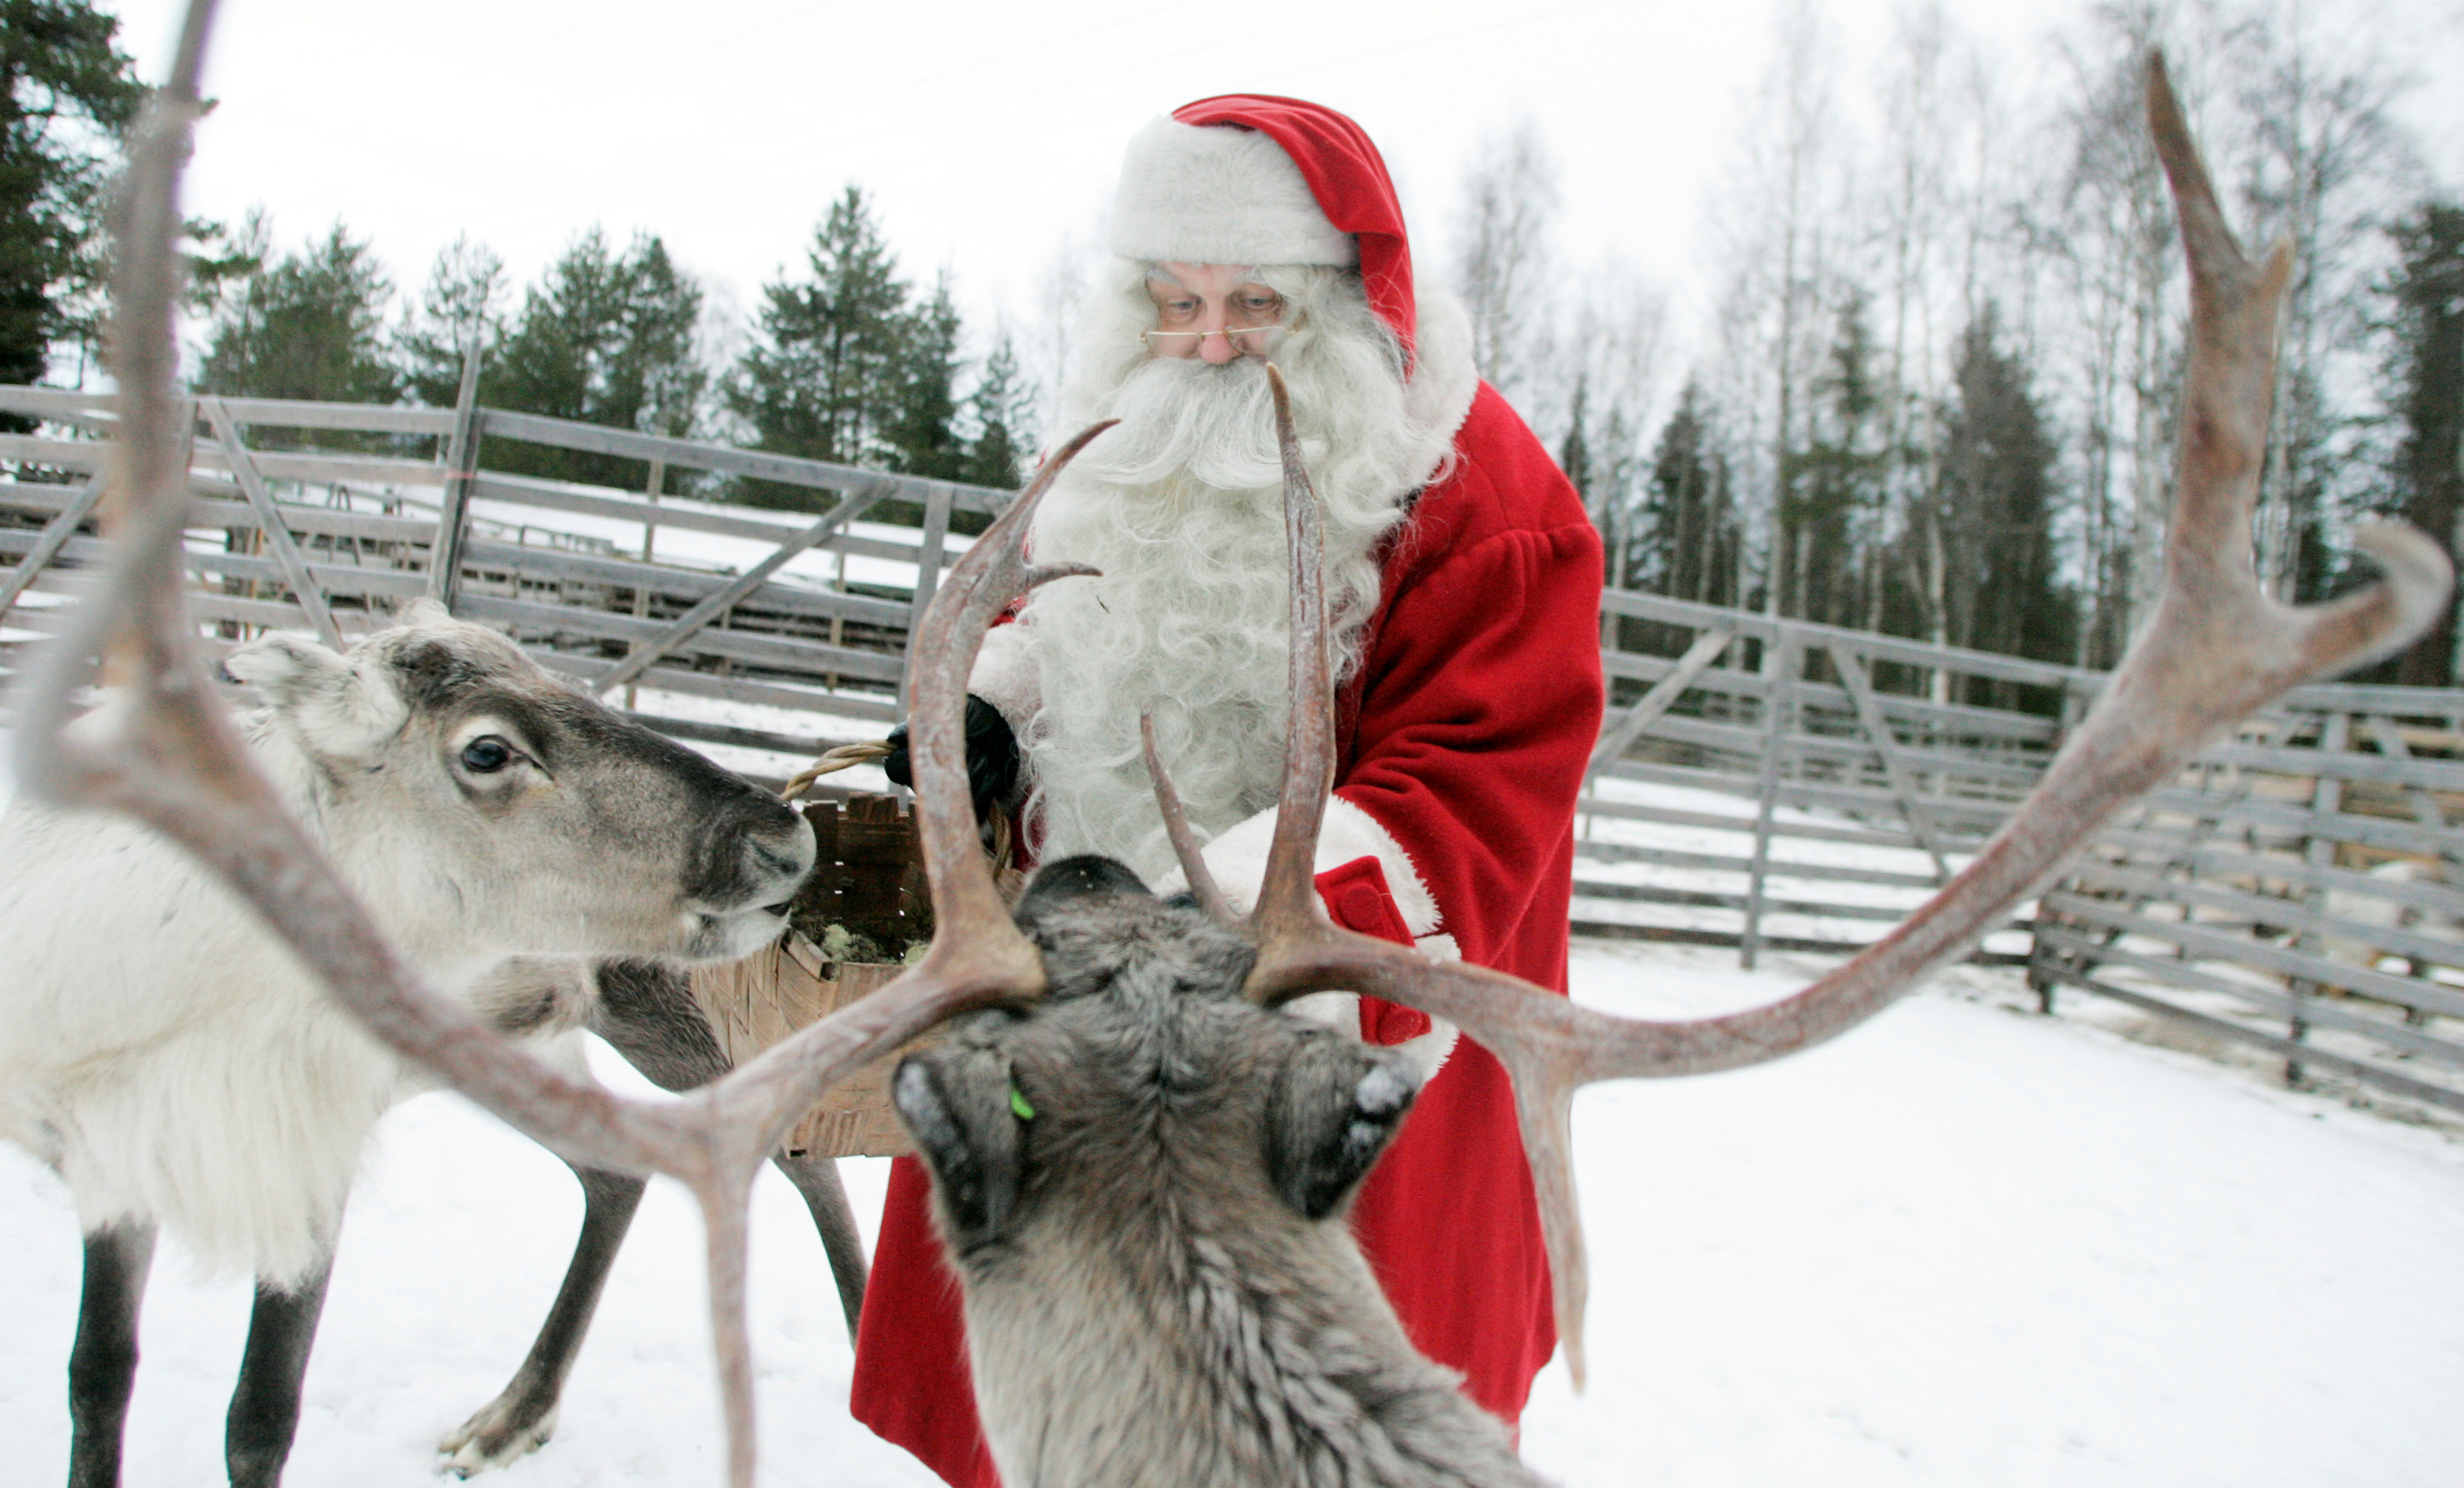 A man dressed as Santa Claus feeds reindeer at a reindeer farm in preparation for Christmas on the Arctic Circle in Rovaniemi, northern Finland on Dec. 19, 2007. (Kacper Pempel / Reuters)